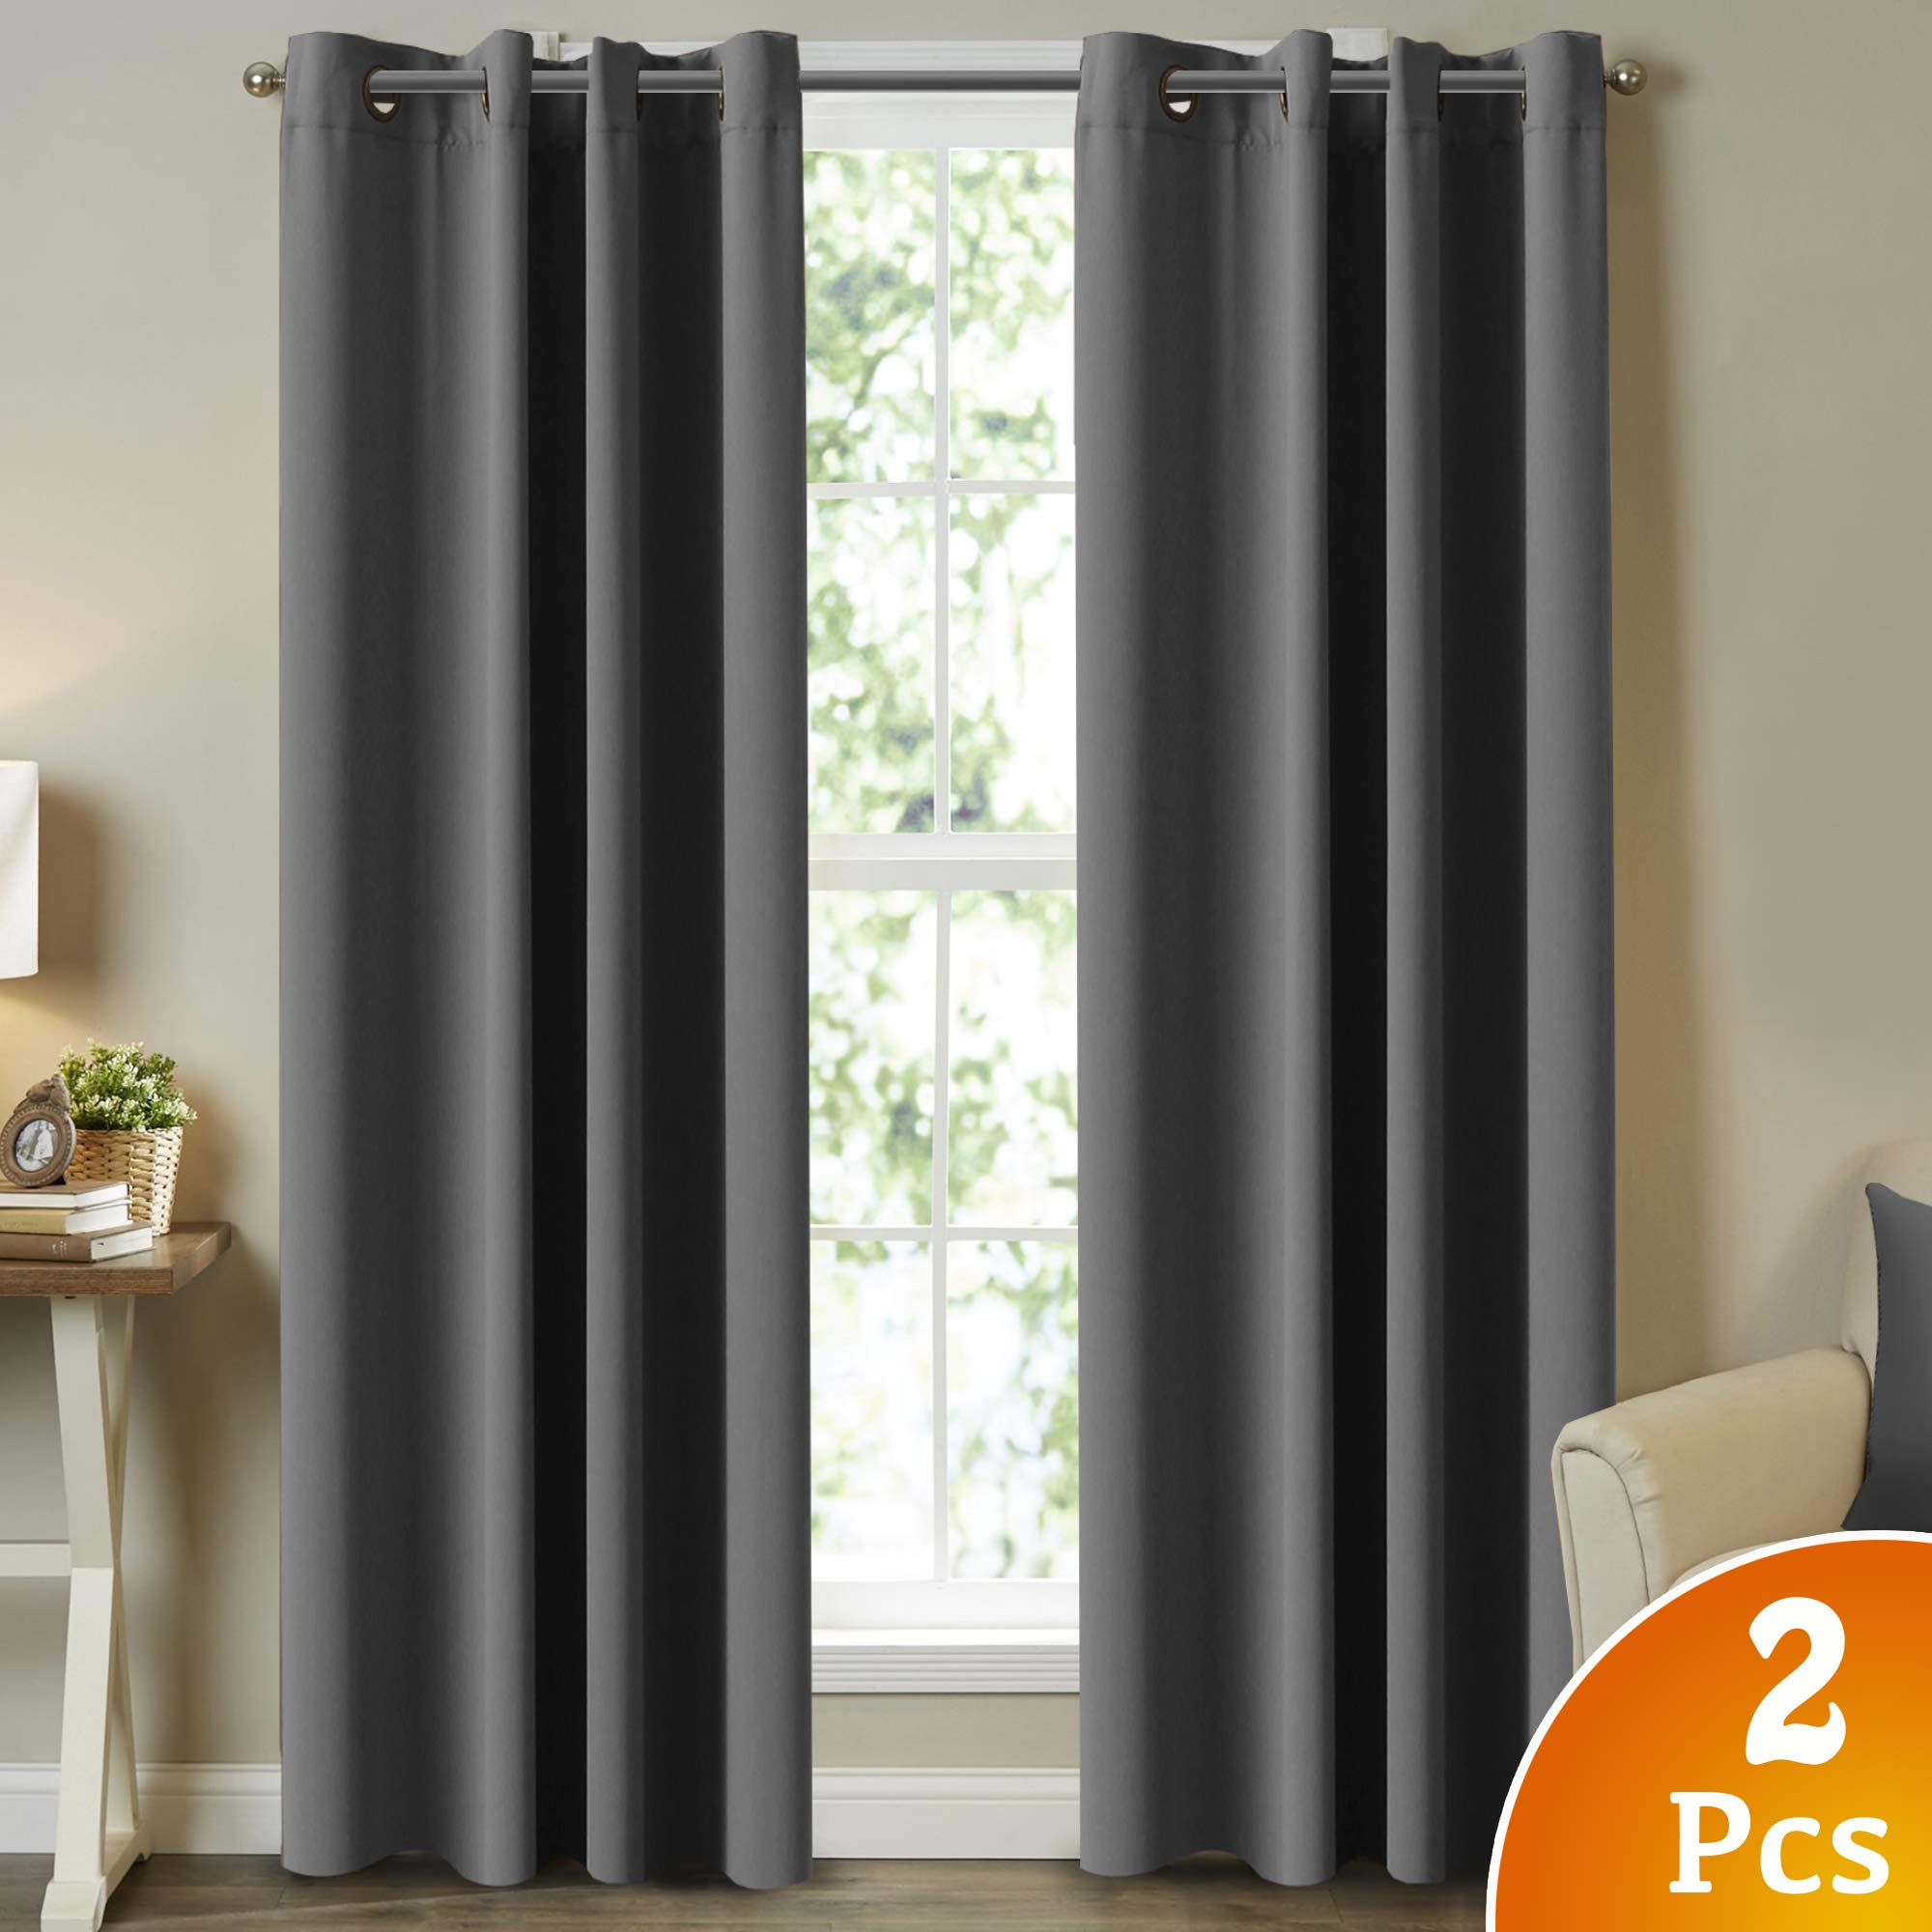 Turquoize Thermal Insulated Blackout Curtains Room Darkening Thermal Insulated Noise Reducing Blackout Window Curtains for Living Room/Infant Room - 96 Inch Long, Set of 2, Charcoal Gray